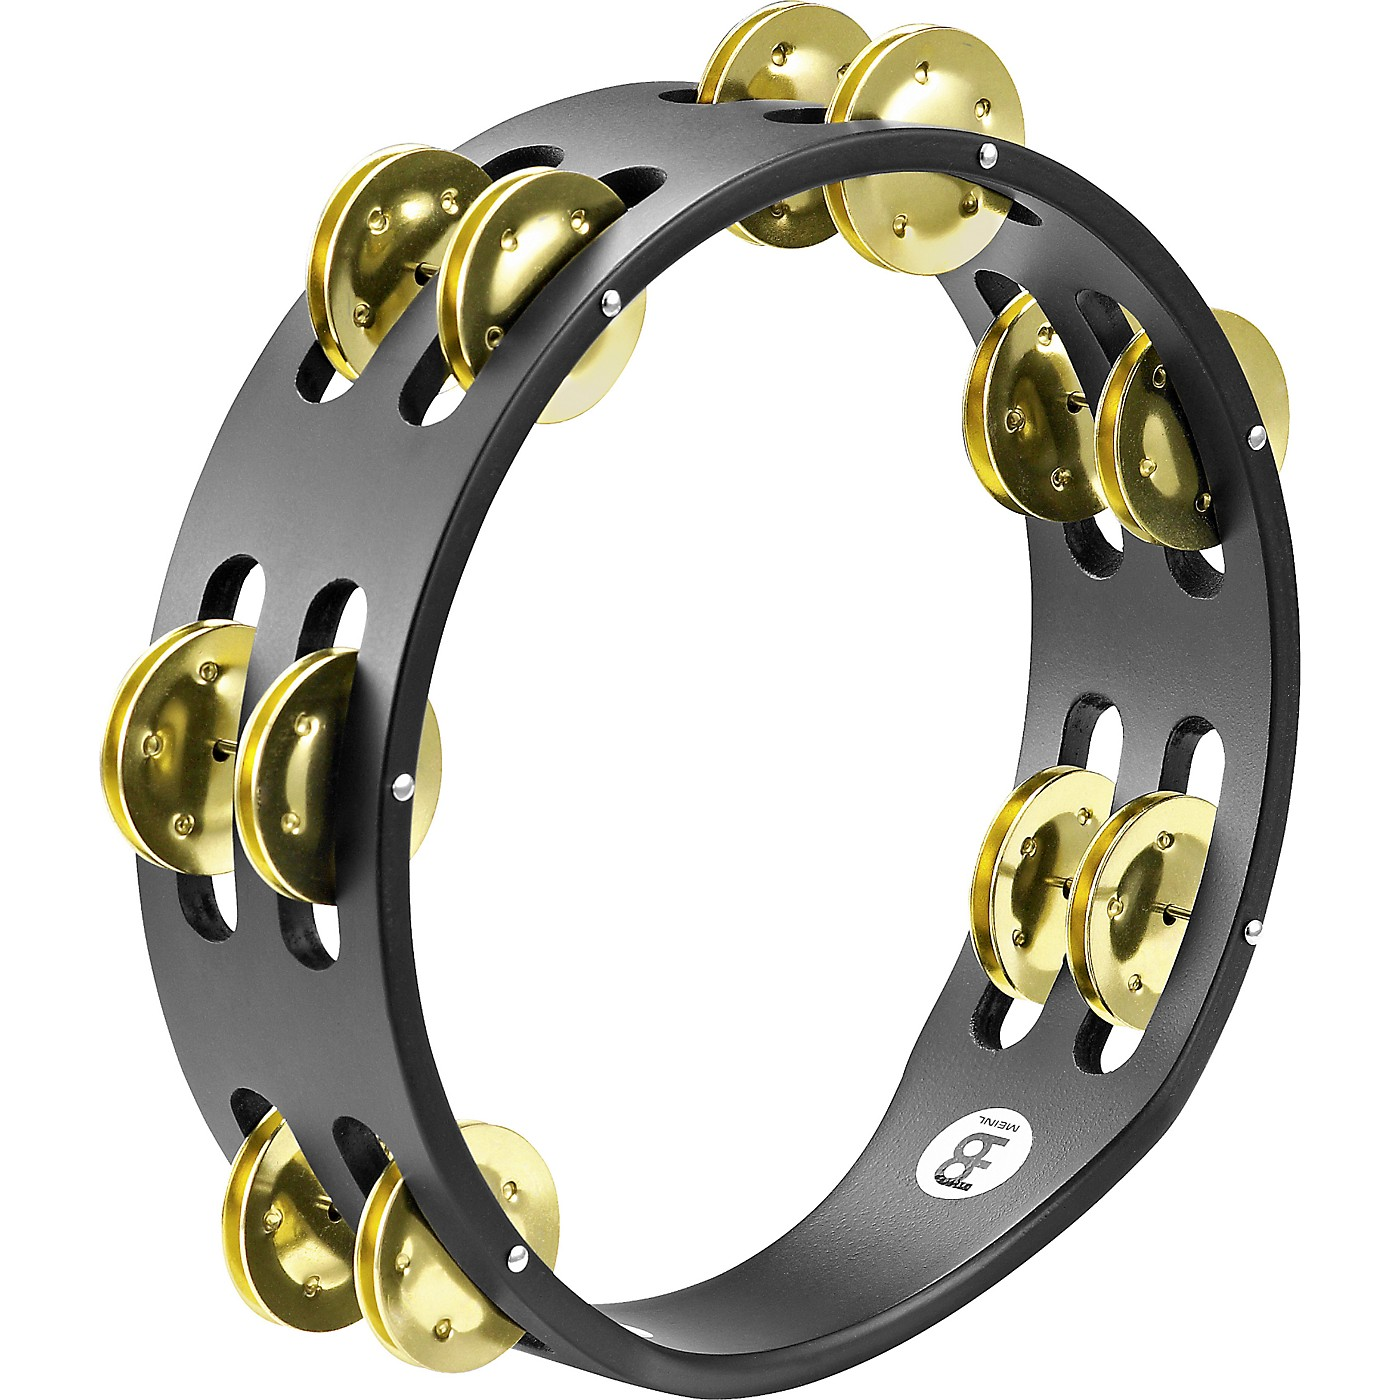 Meinl Compact Wood Tambourine Two Rows Brass Jingles thumbnail